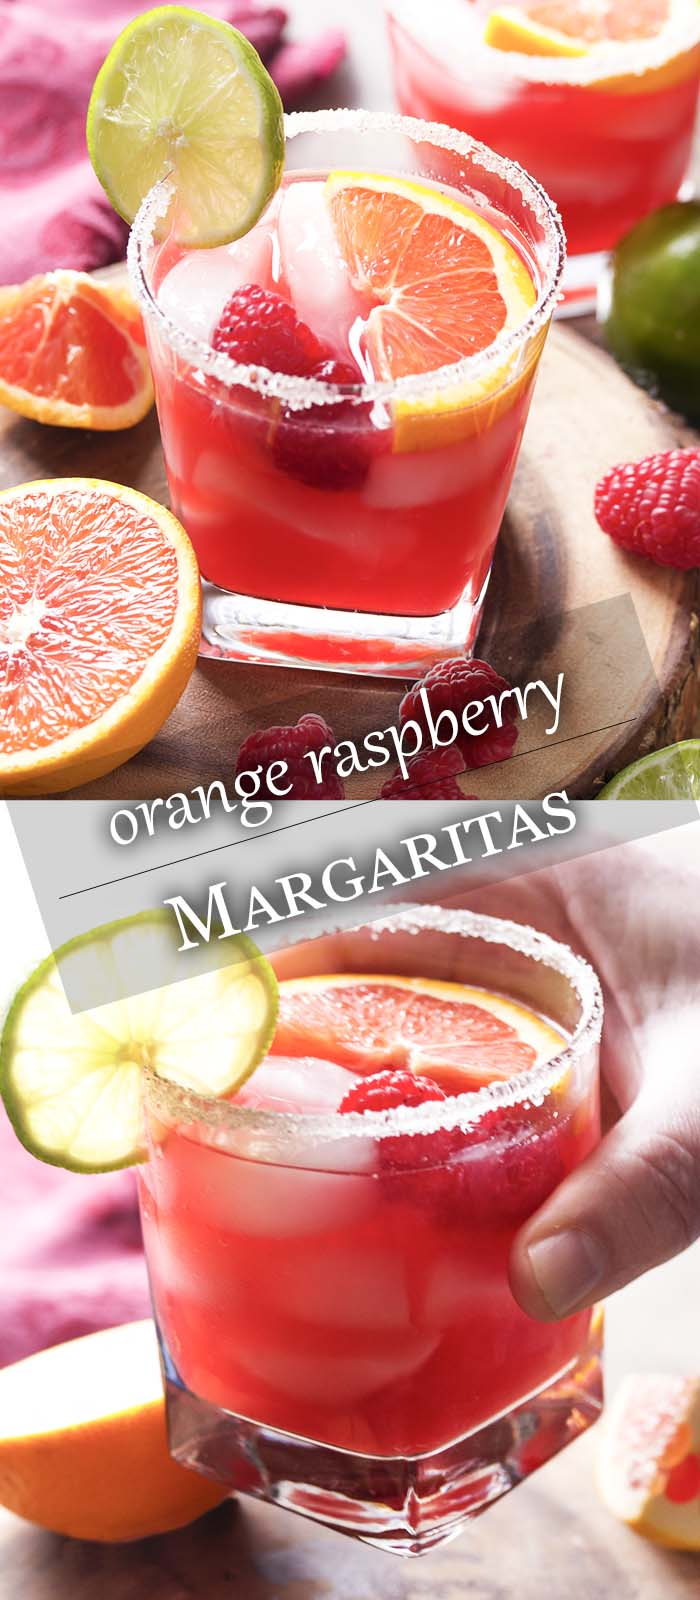 Pink cocktail in a sugar rimmed glass being lifted with text overlay - Orange Raspberry Margaritas.